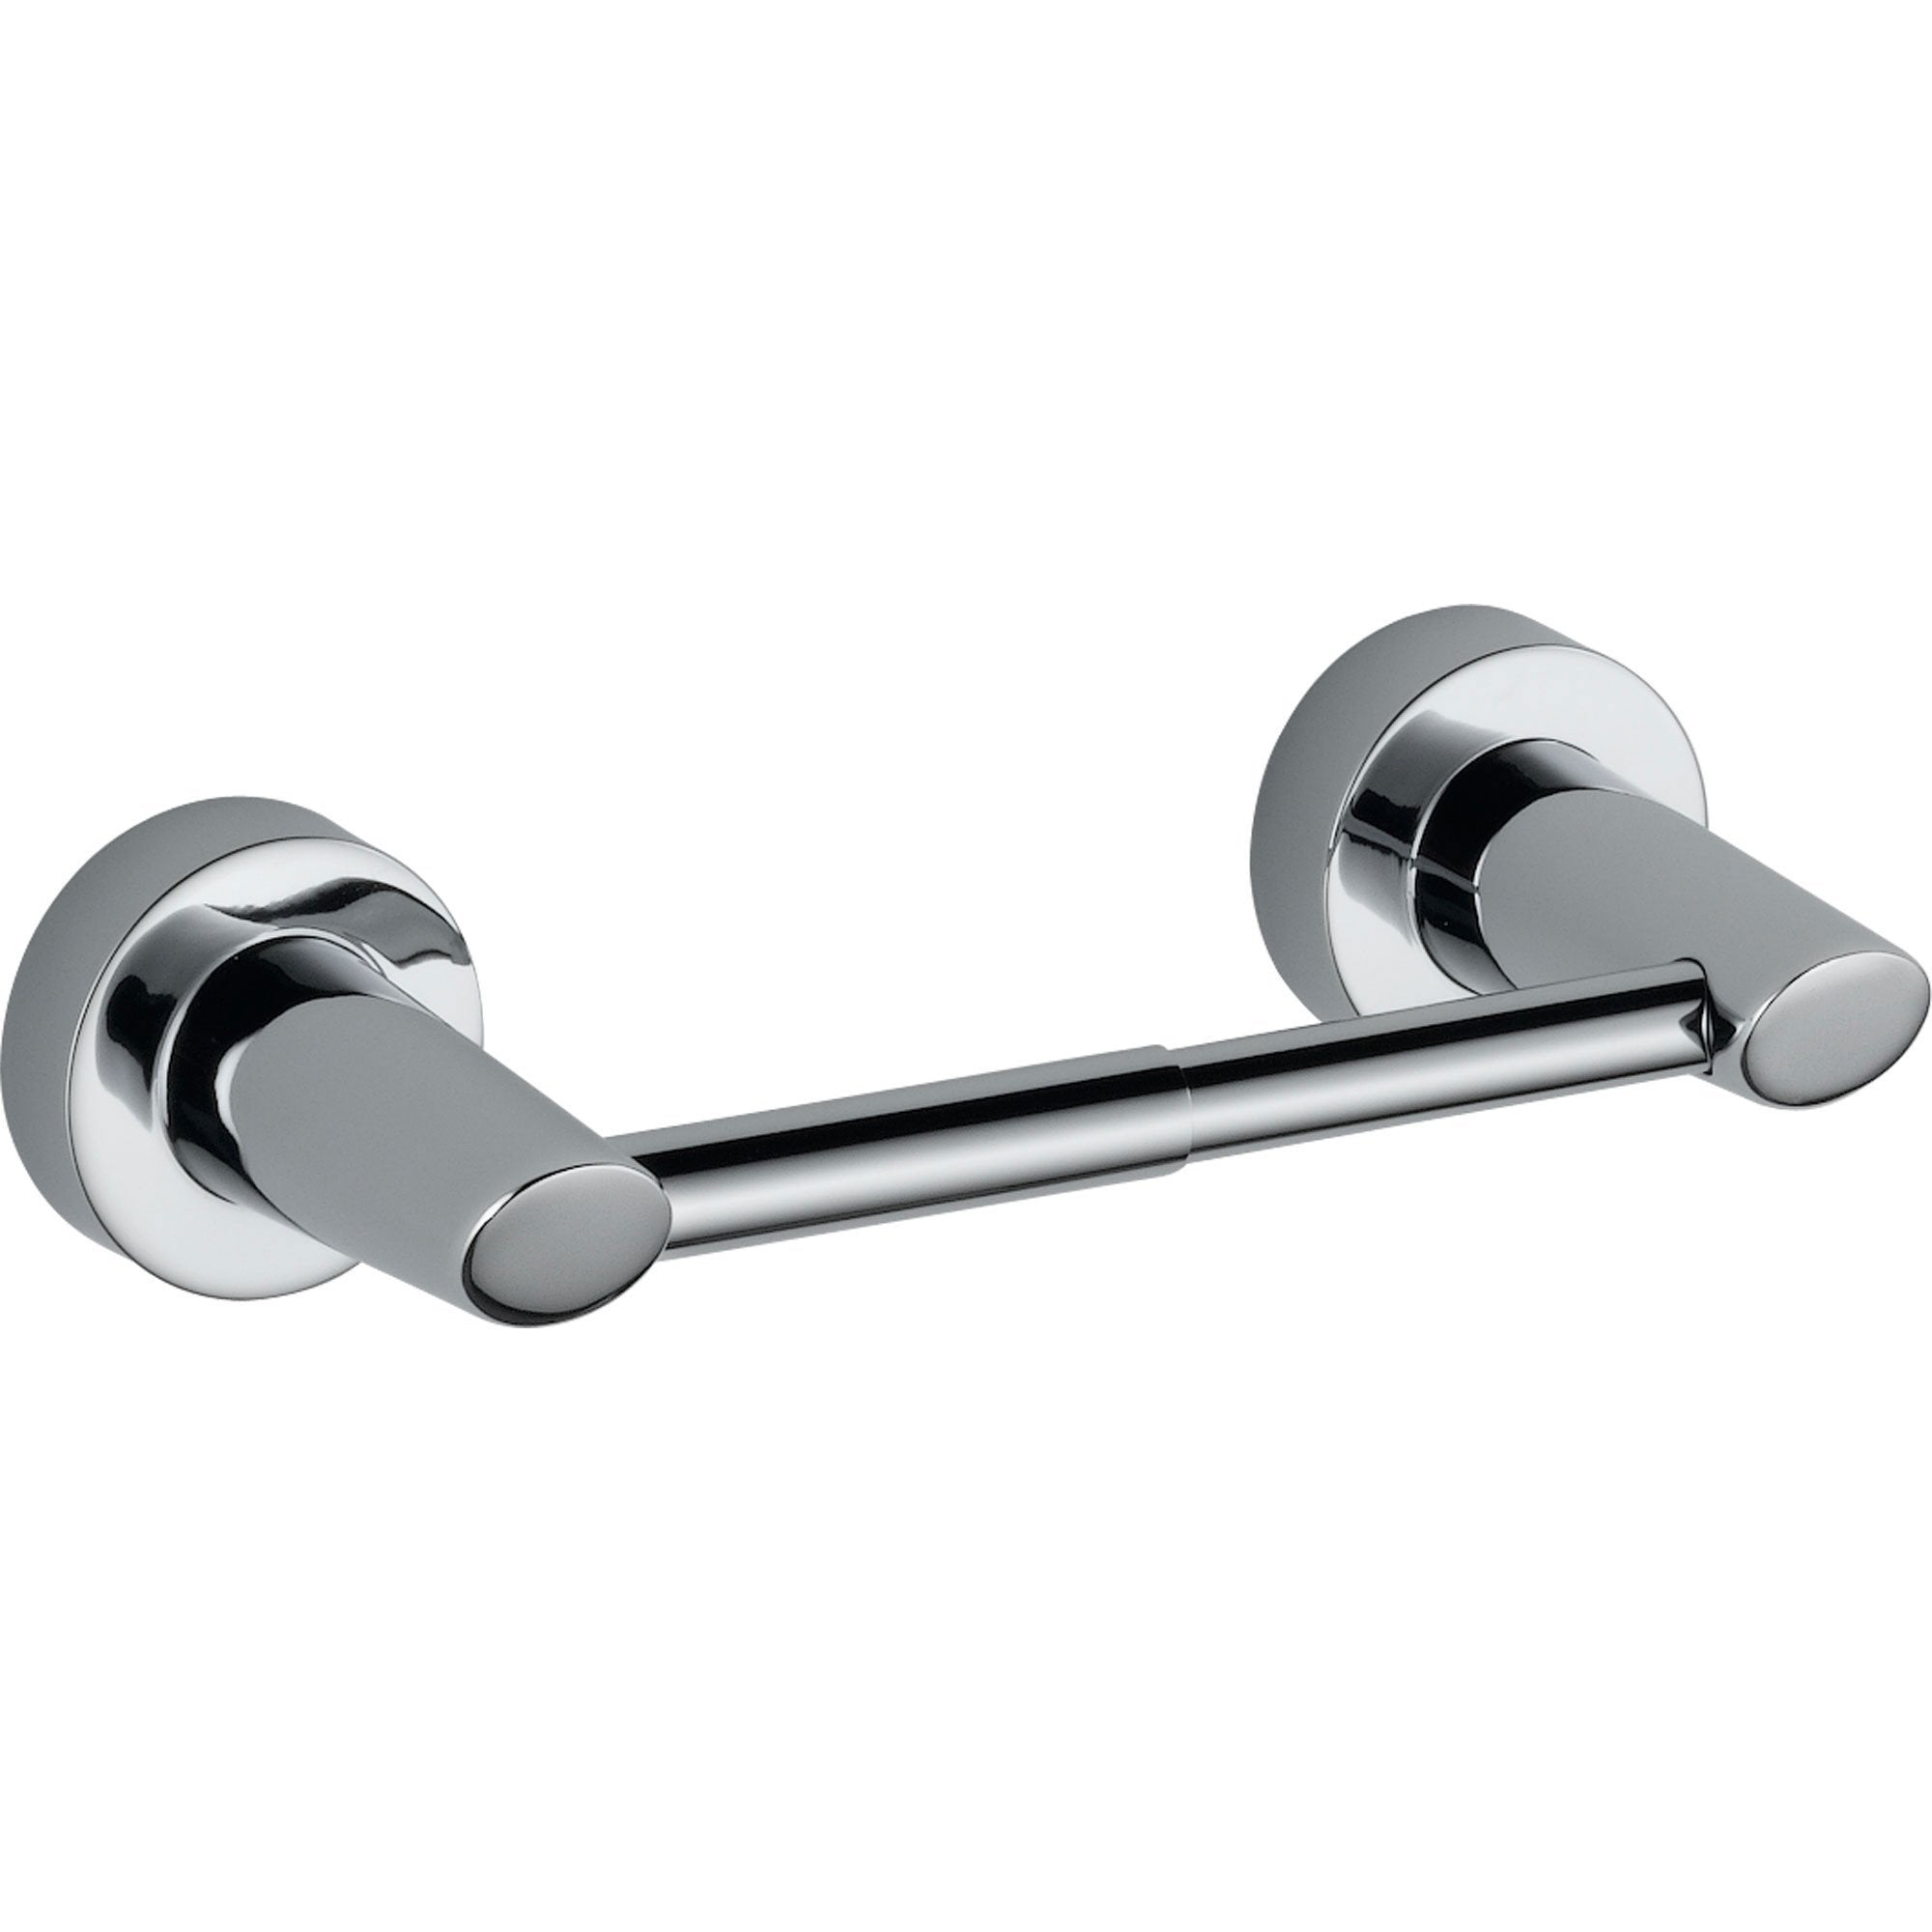 Delta Compel Double Post Chrome Toilet Paper Holder 638716